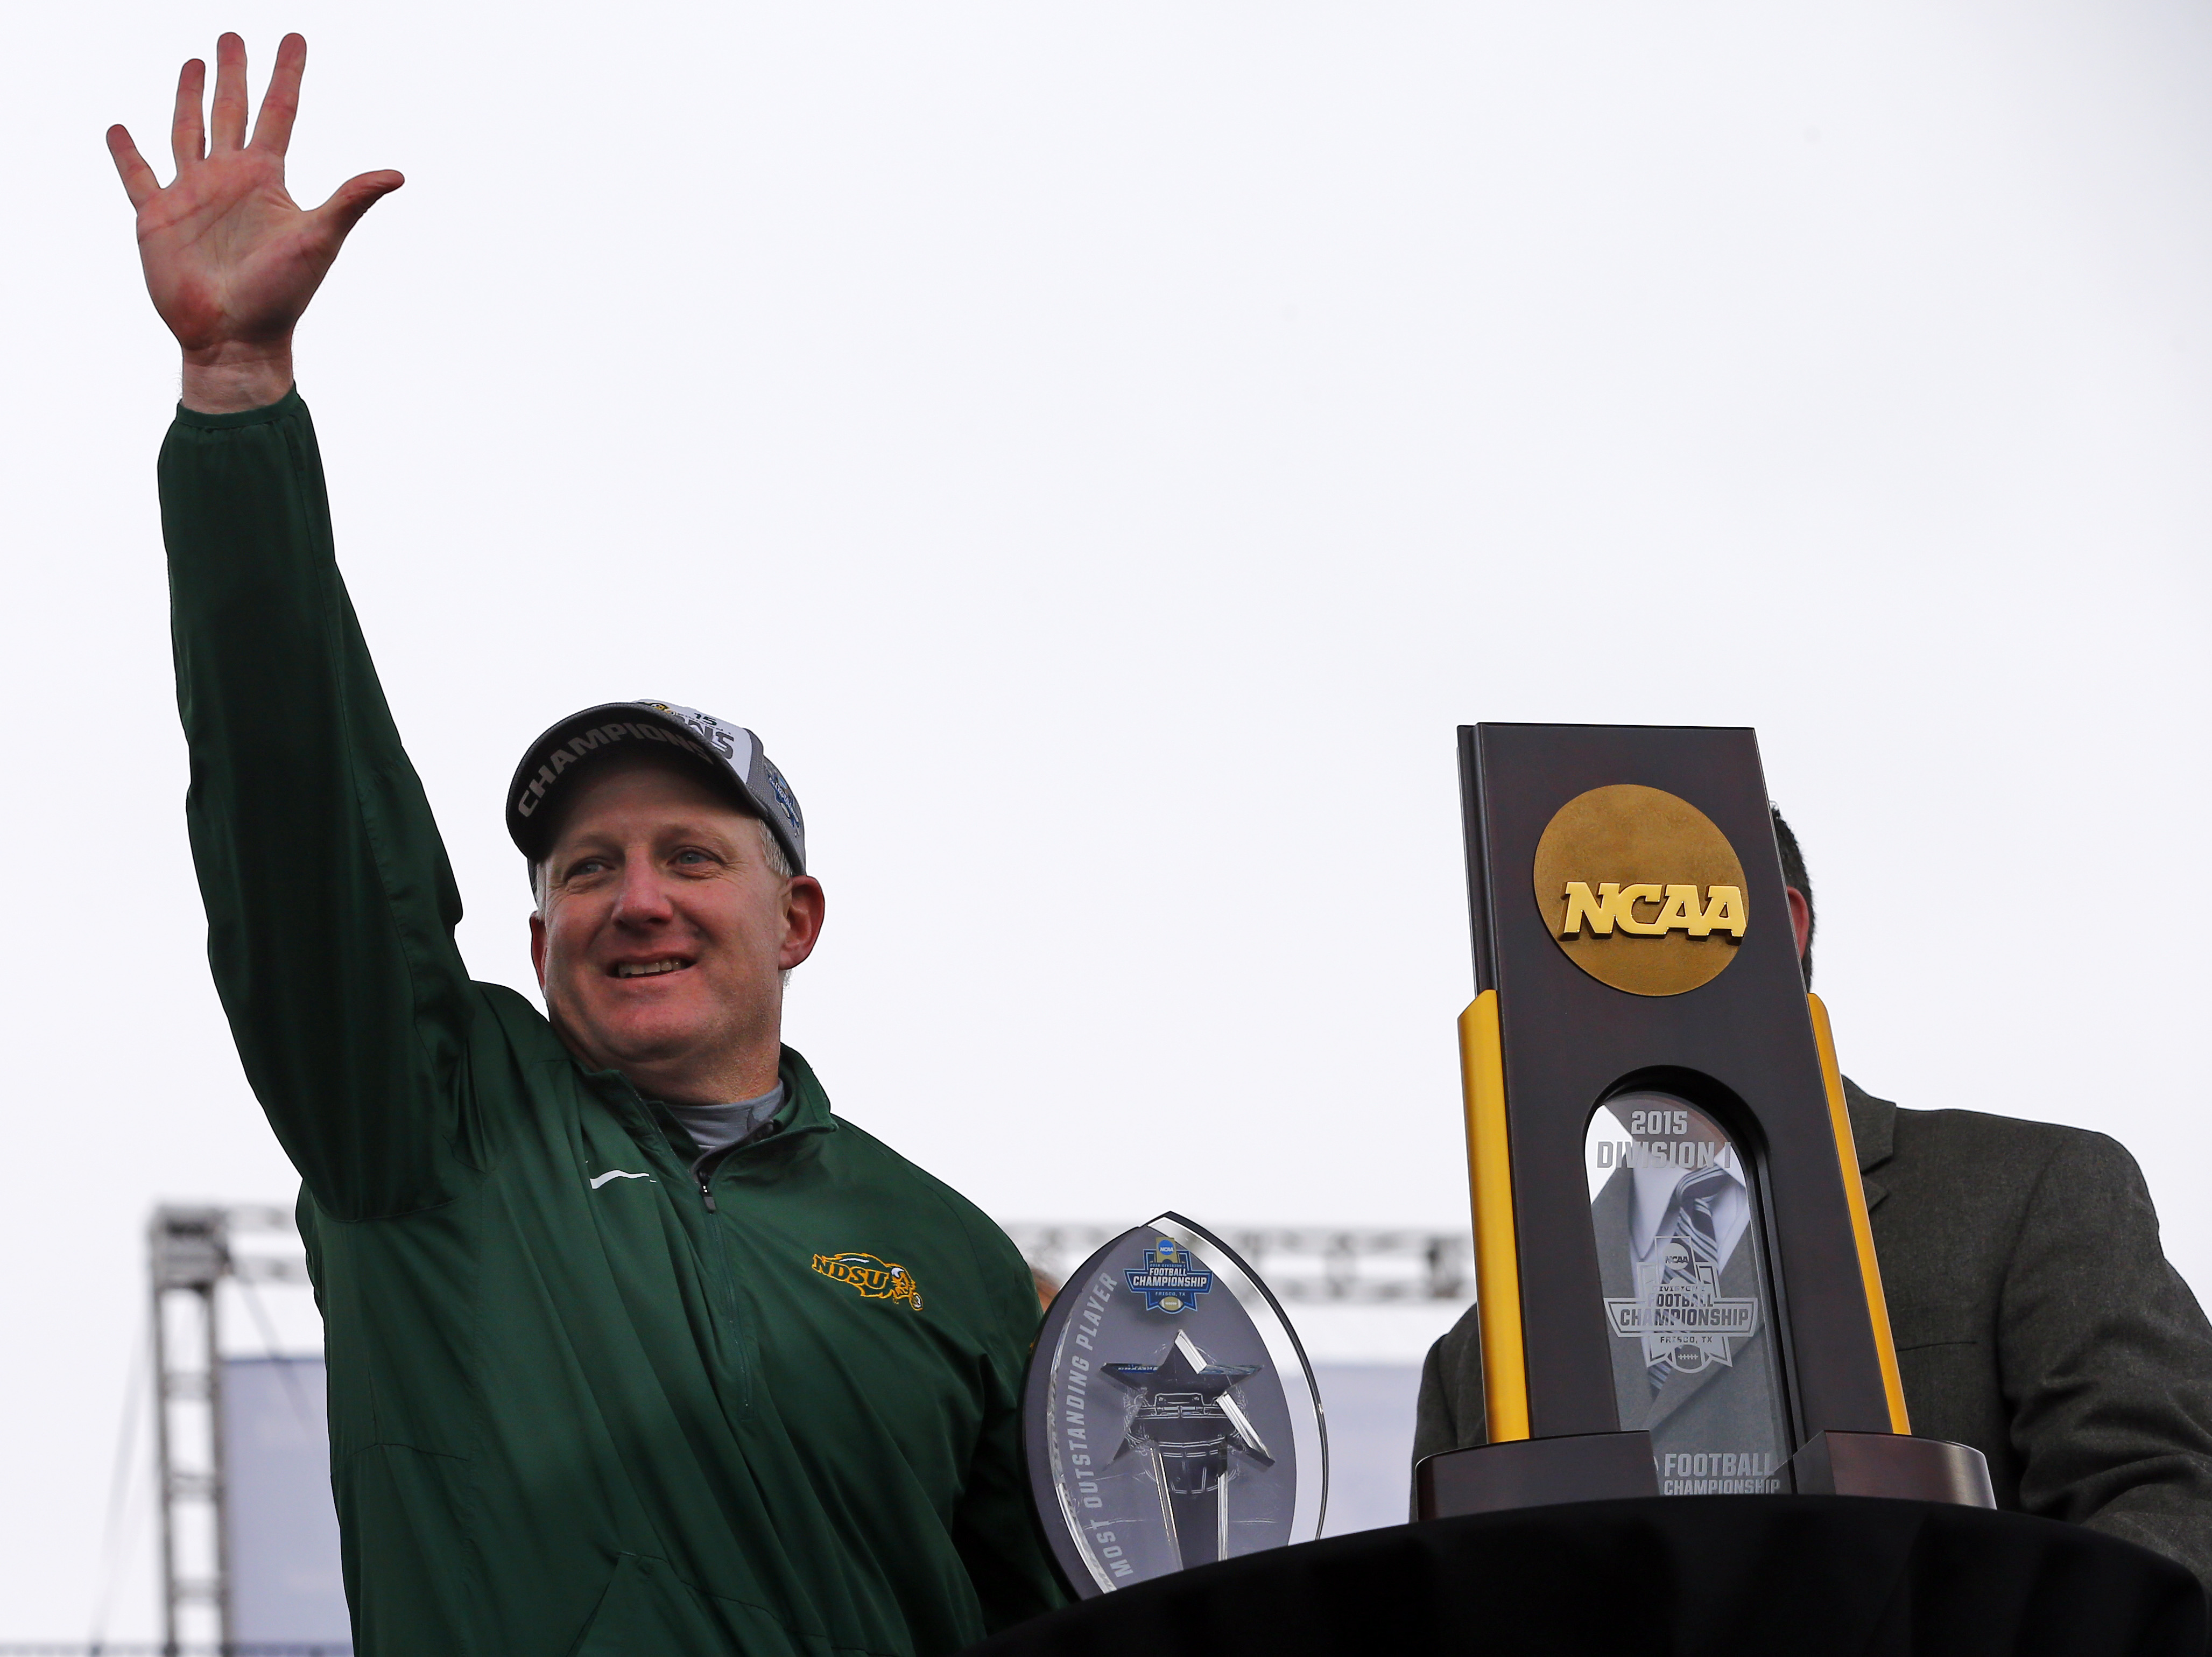 North Dakota State head coach Chris Klieman holds up five fingers after defeating Jacksonville State for their fifth consecutive championship after the FCS championship NCAA college football game, Saturday, Jan. 9, 2016, in Frisco, Texas.  North Dakota St